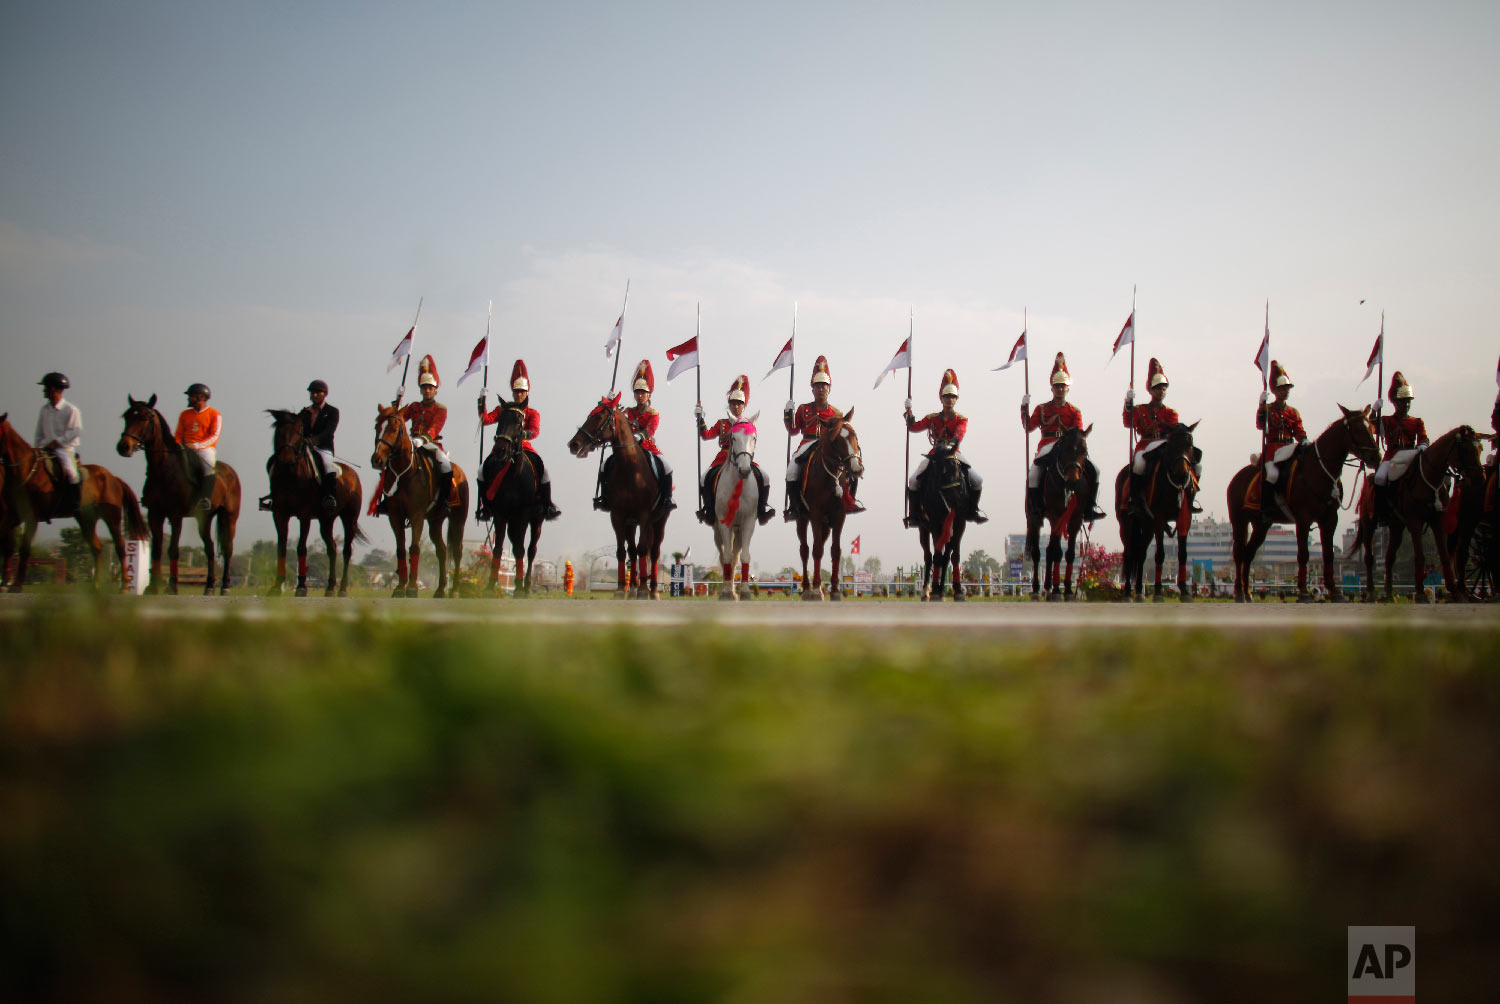 Nepalese Cavalry soldiers rehearse for the Ghode Jatra festival on April 5, 2019, in Kathmandu, Nepal. (AP Photo/Niranjan Shrestha)